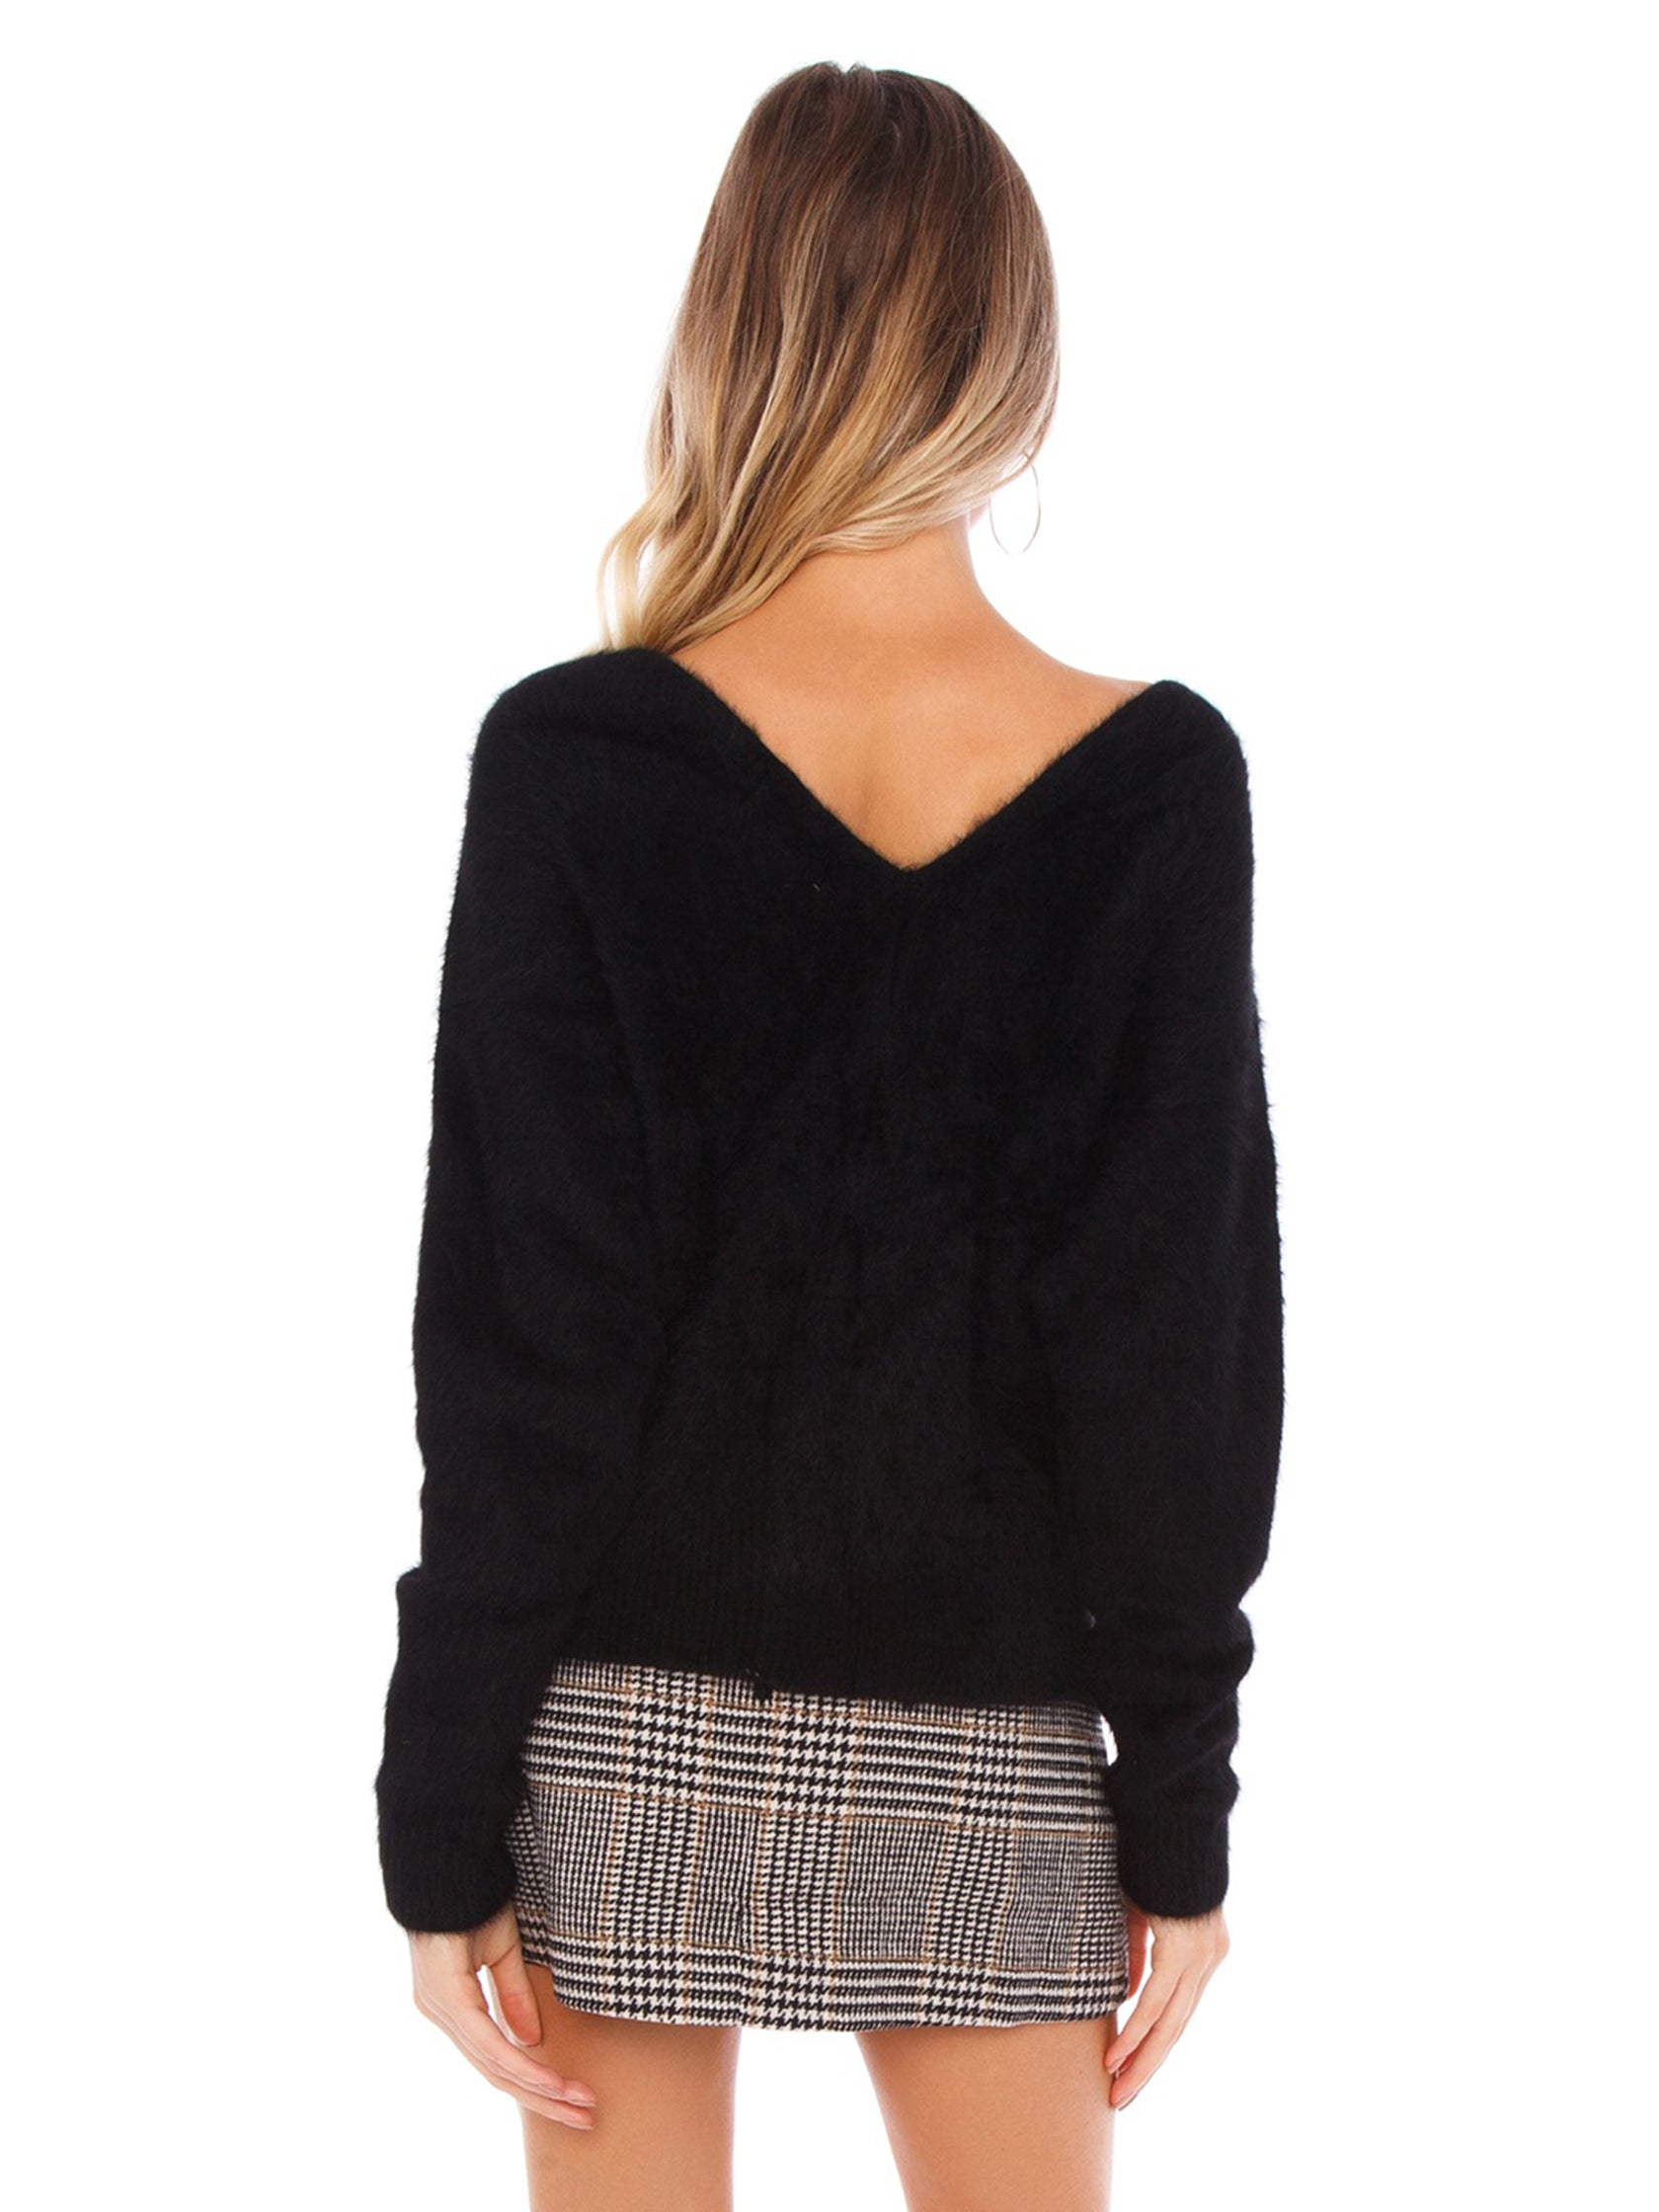 Women outfit in a sweater rental from SAGE THE LABEL called Lover Lay Down Sweater